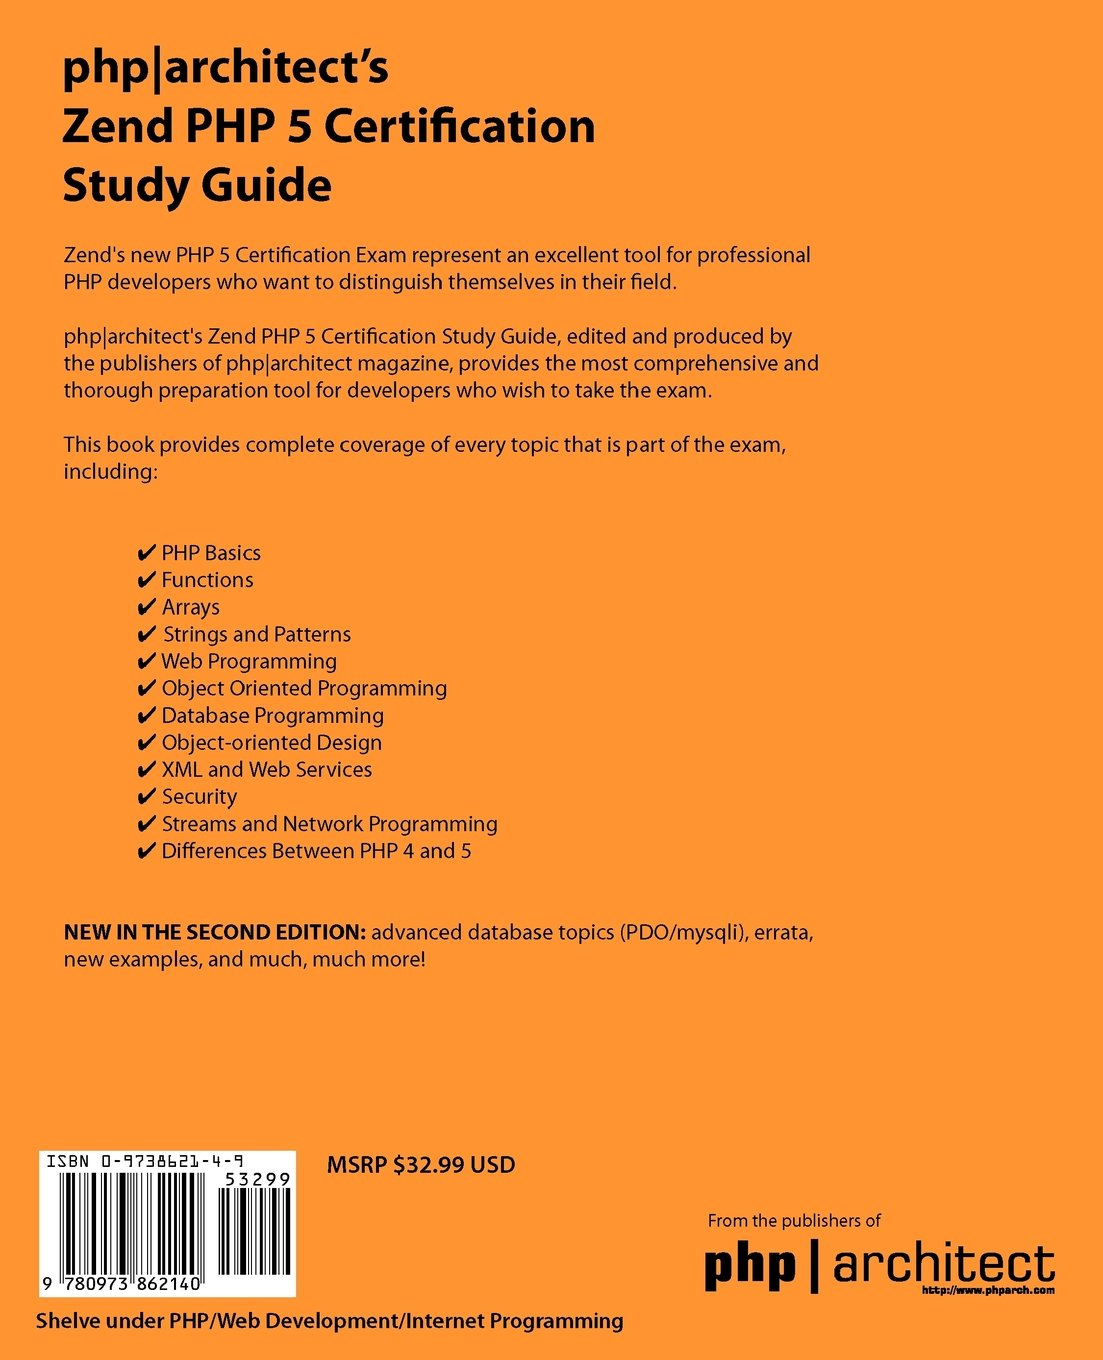 Phparchitects zend php 5 certification study guide davey shafik phparchitects zend php 5 certification study guide davey shafik ben ramsey 9780973862140 amazon books 1betcityfo Choice Image